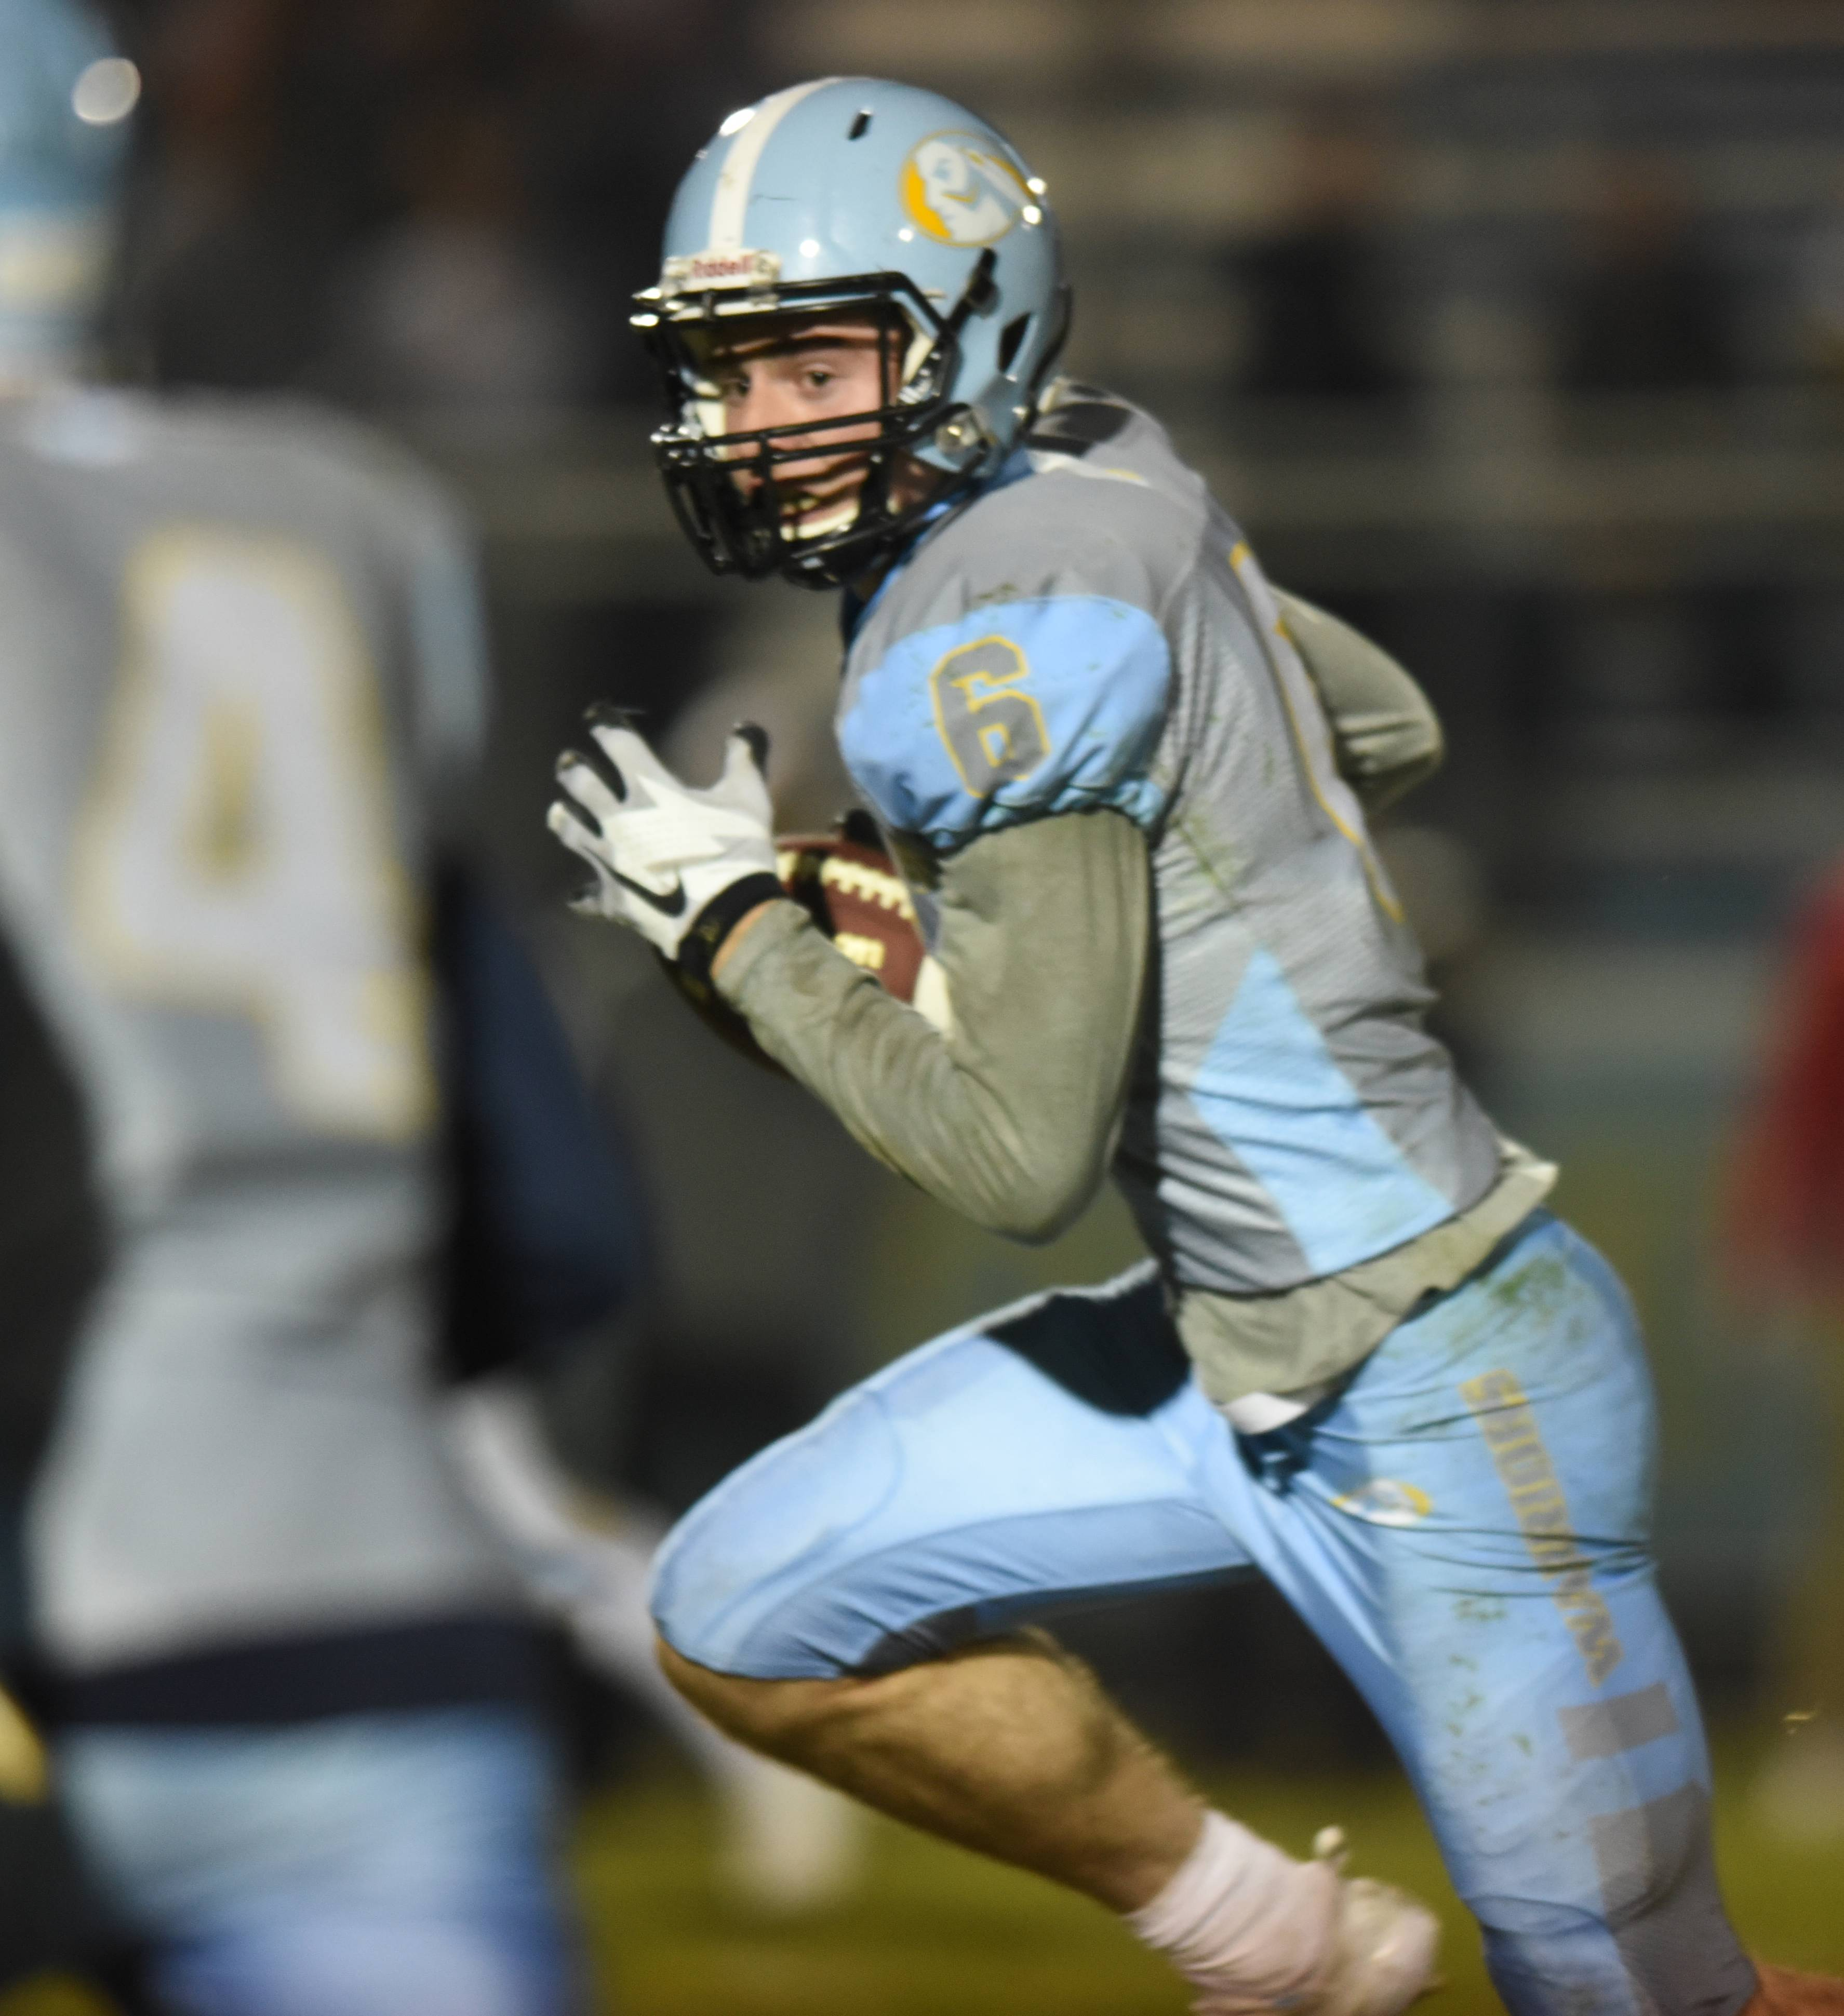 Maine West's Ely Grimmer looks for an opening against Benet last week during the Warriors' 20-18 win in the first round of the Class 7A playoffs. Maine West plays at Willowbrook in the second round on Saturday.